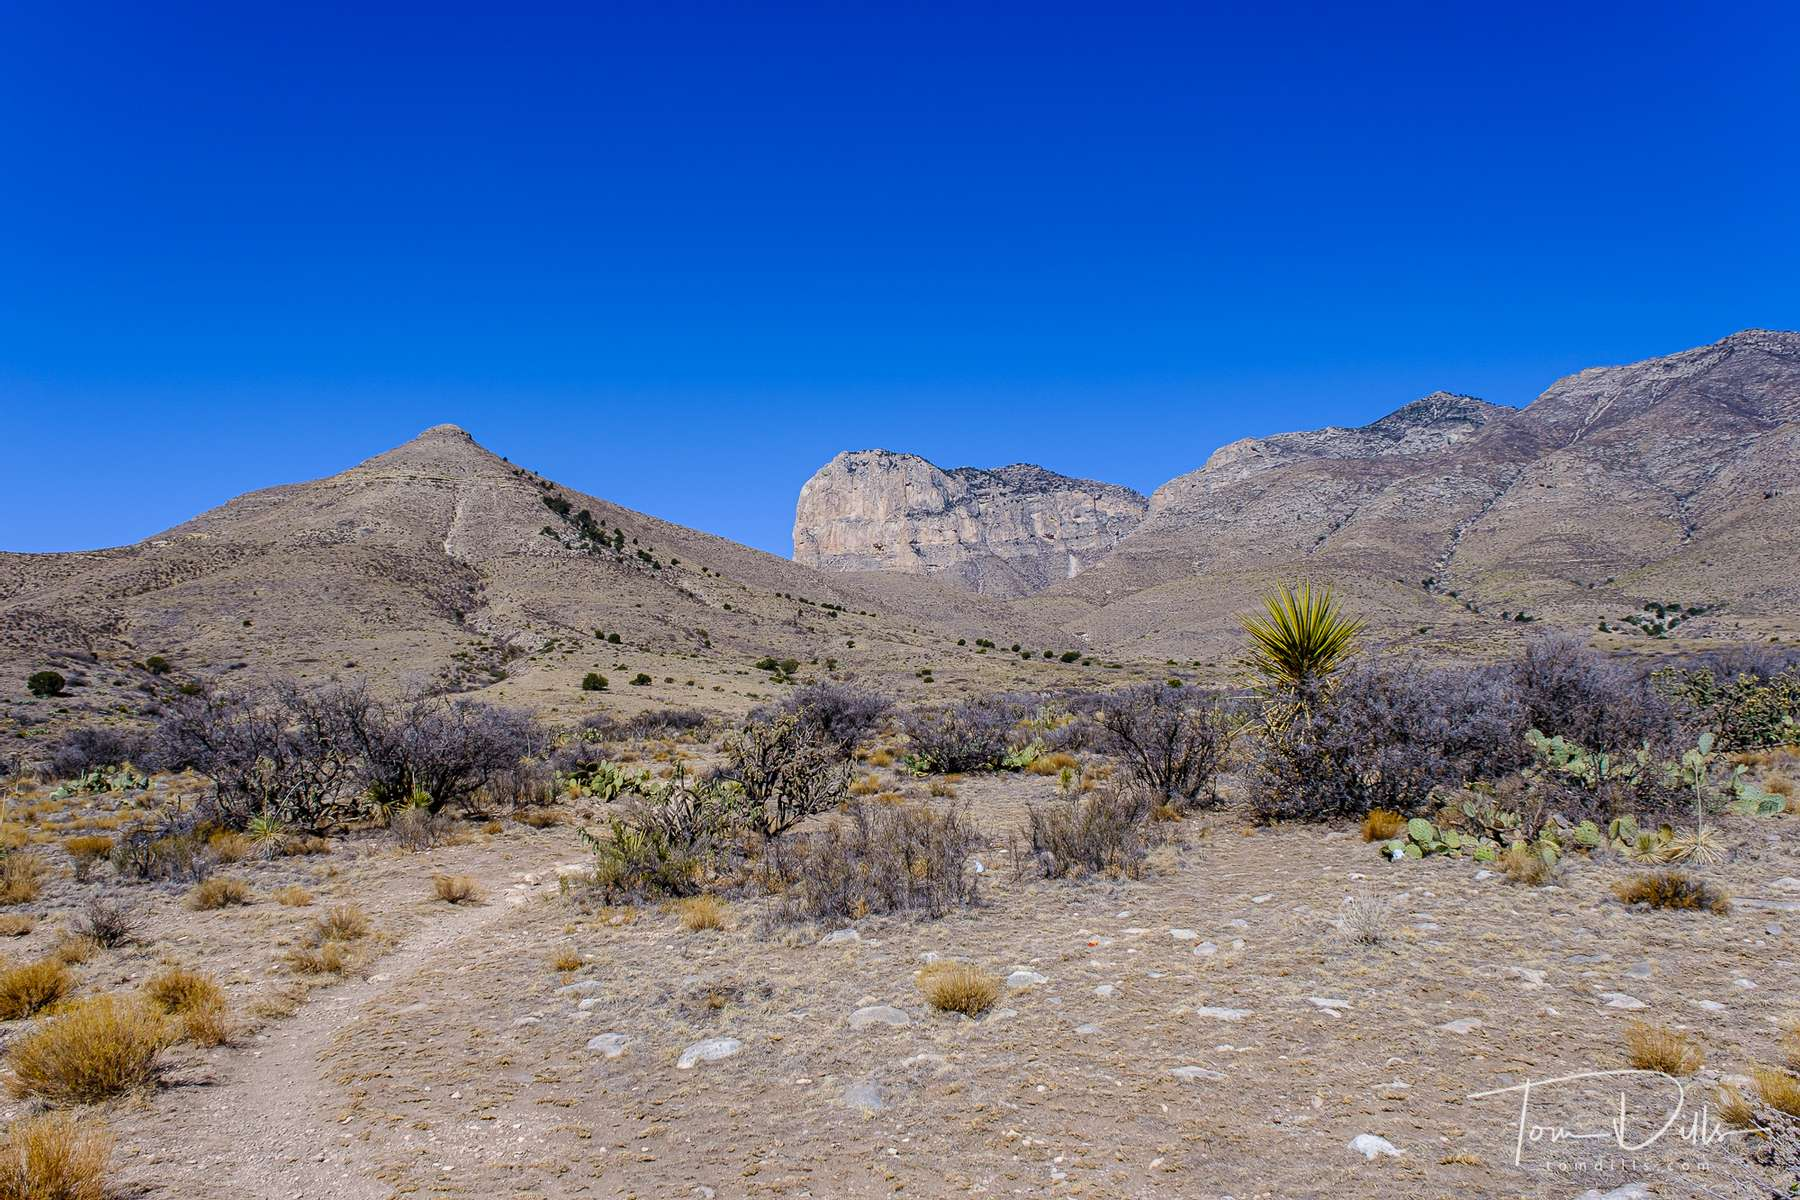 Views of Guadalupe Mountain, the highest point in Texas.  From US 62 near Salt Flat, Texas